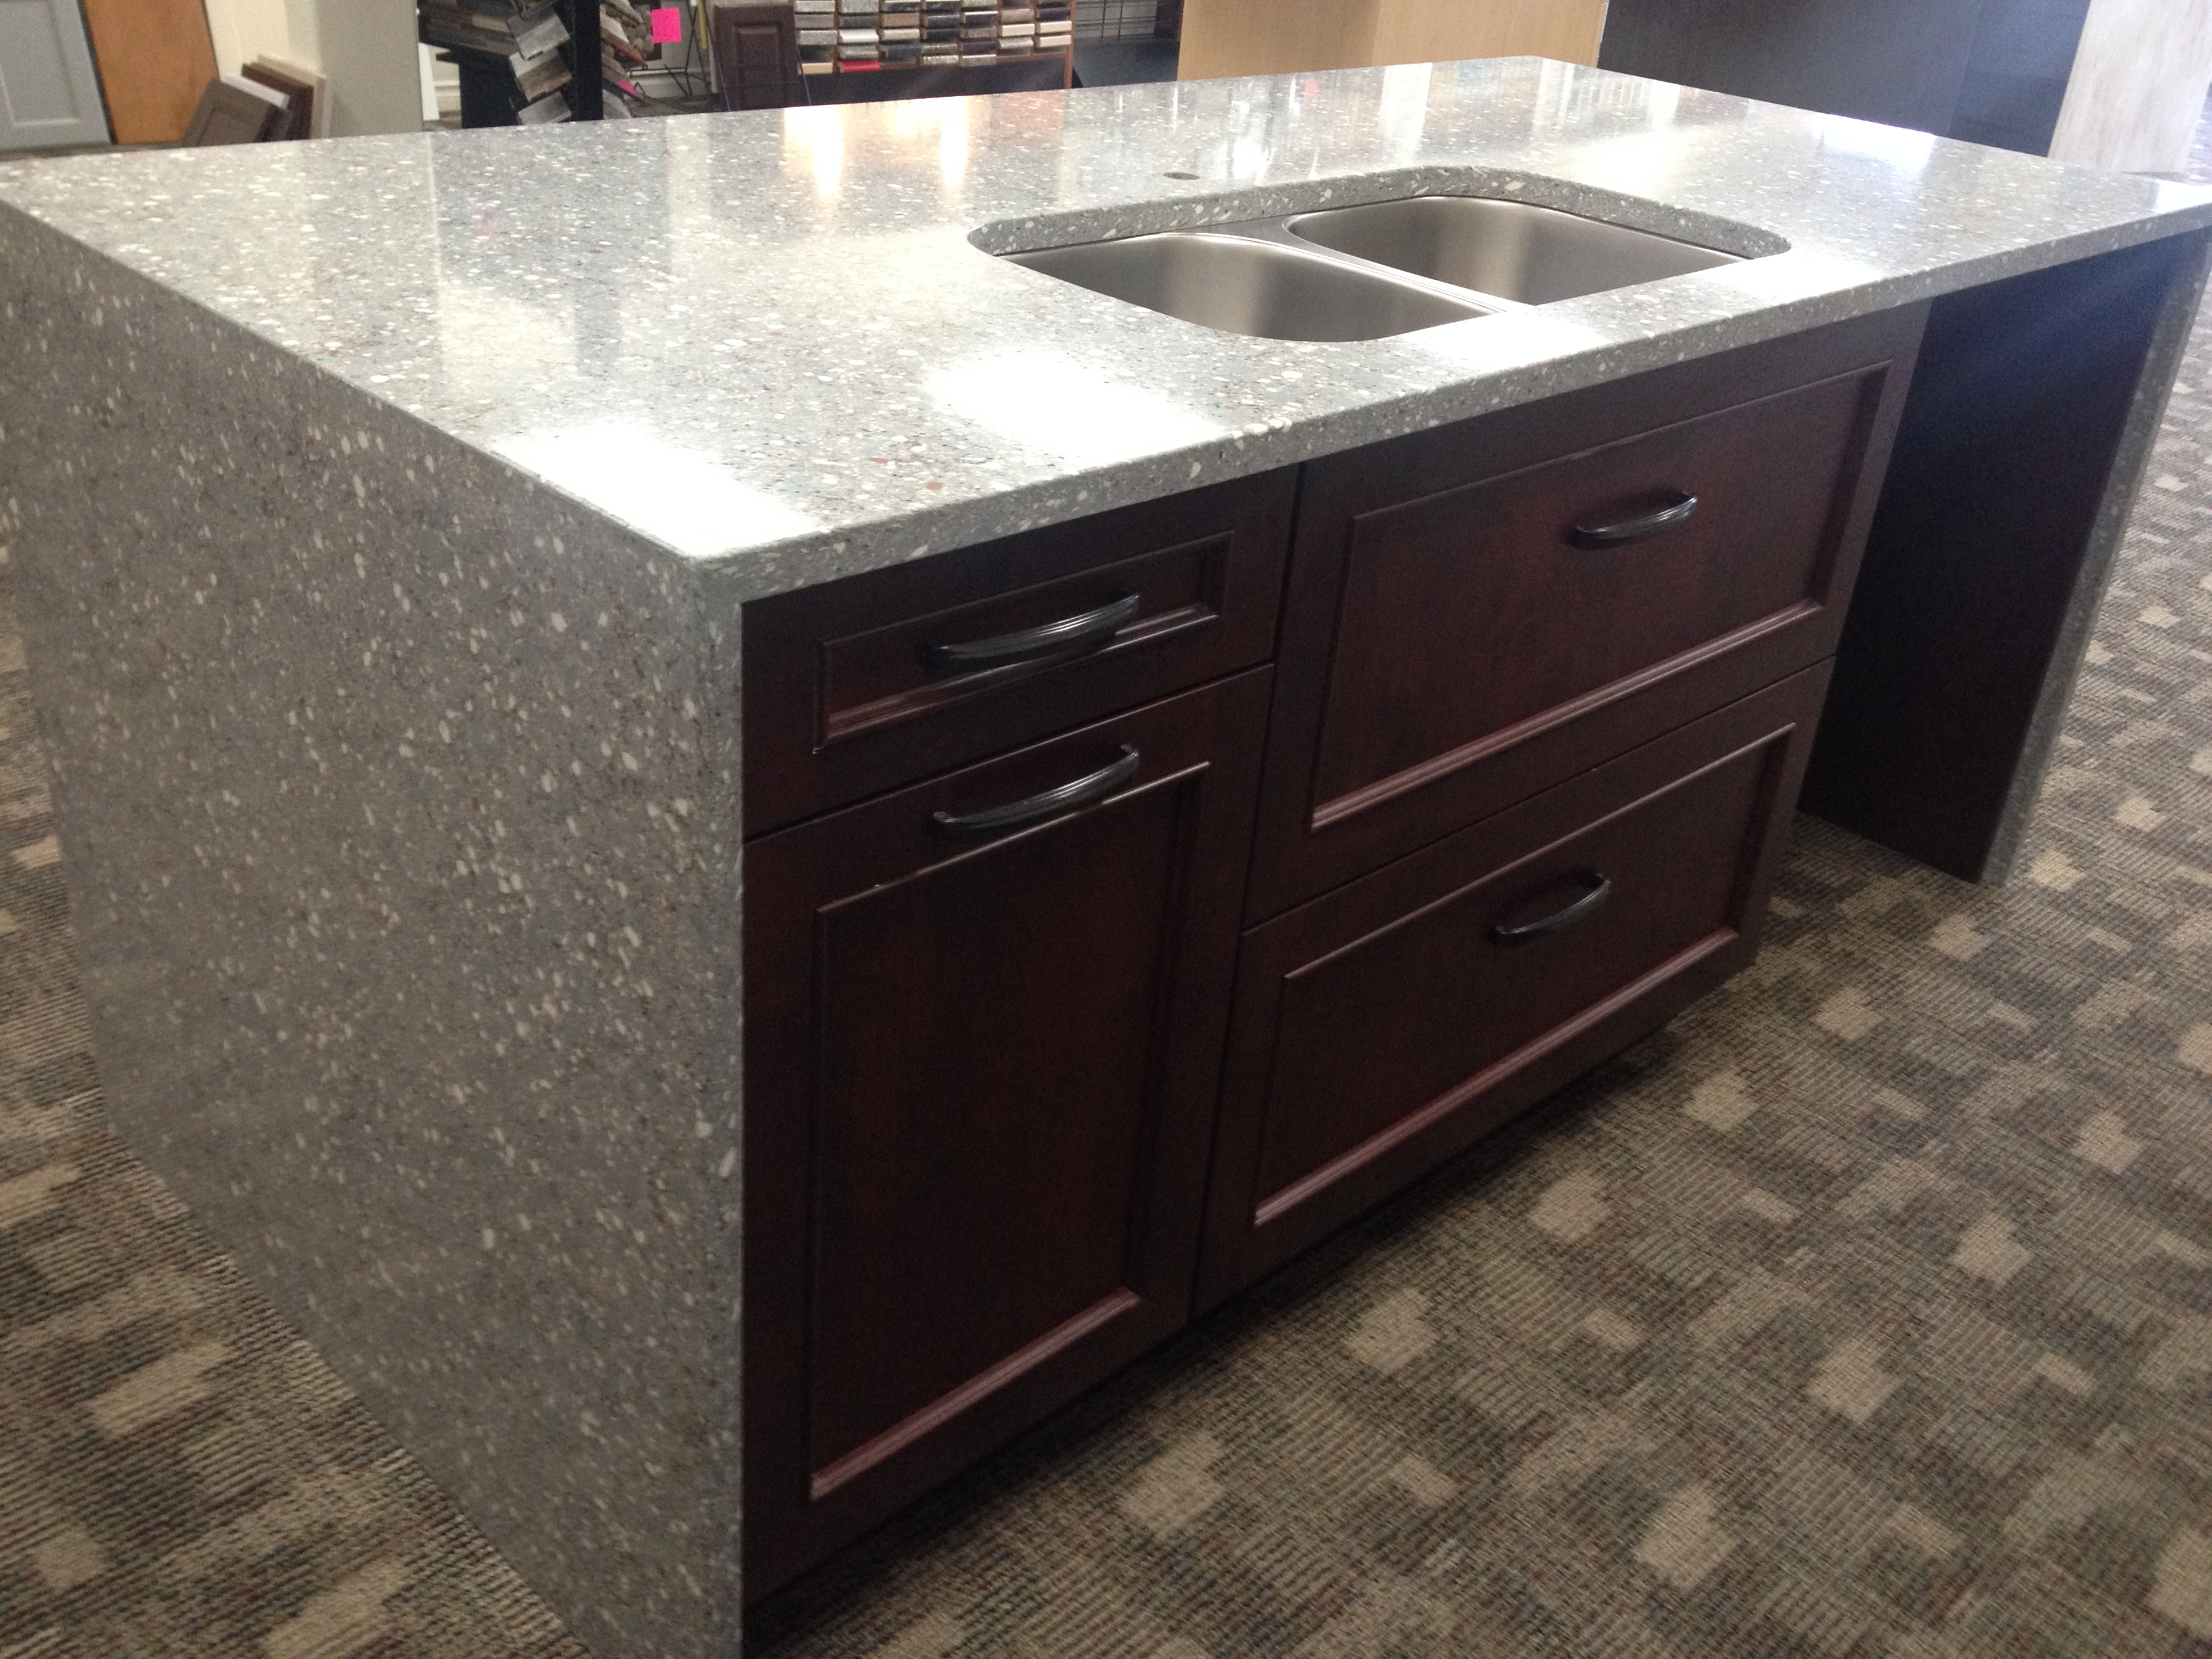 HanStone Quartz Countertop With Undermount Sink and Merit Cabinets